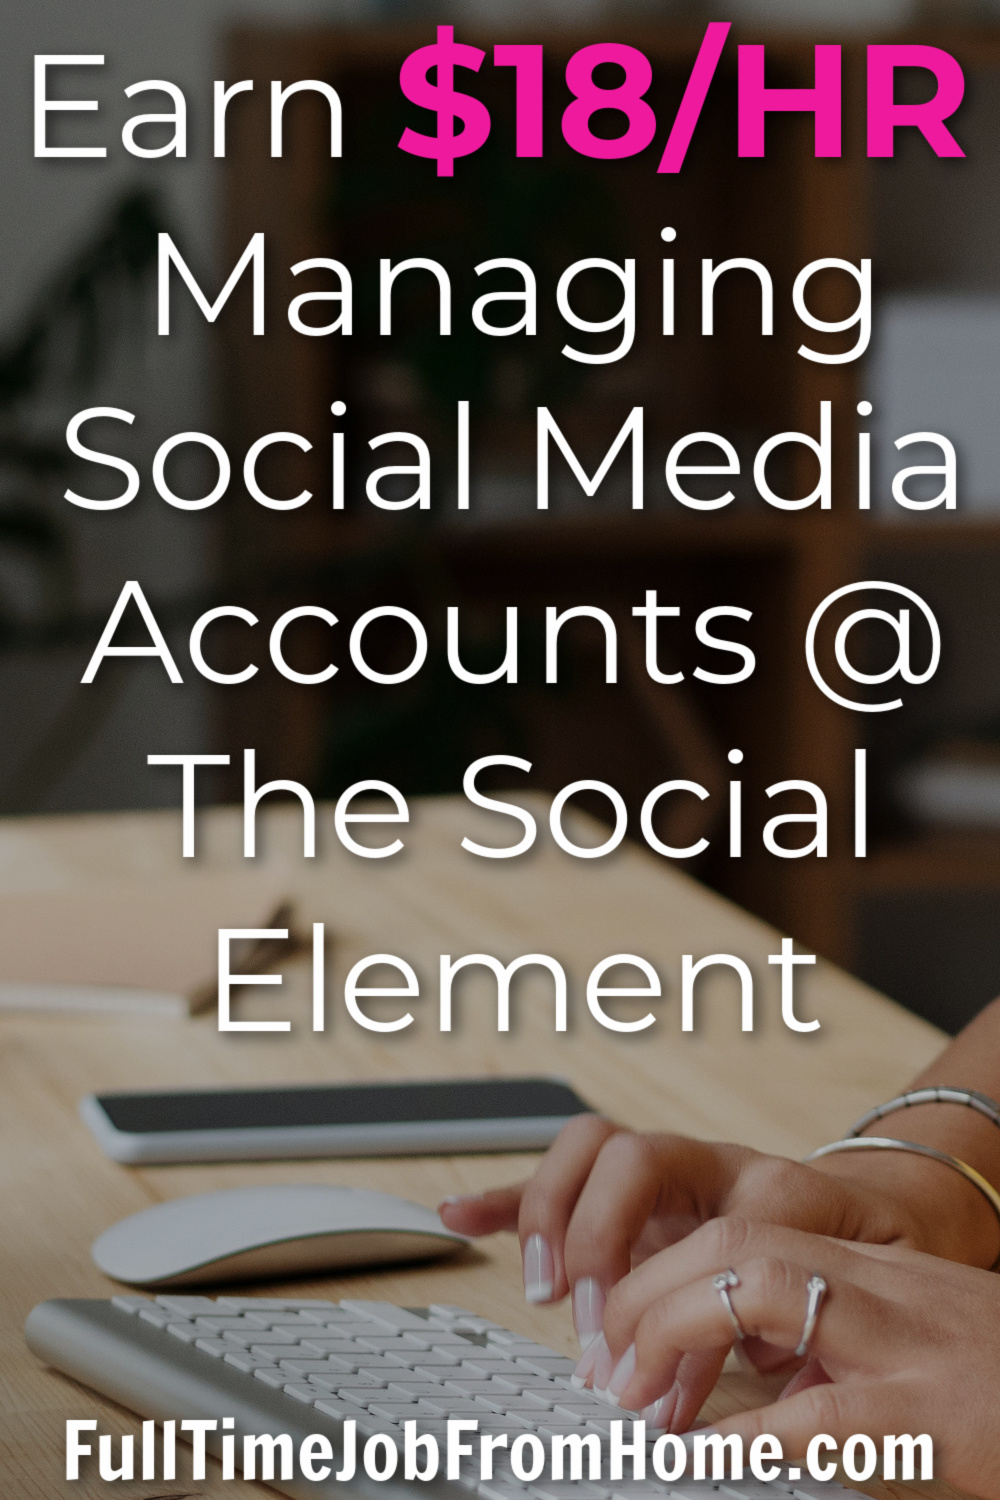 Learn How YOU can work at home managing popular companies social media accounts and earn up to $18/HR with The Social Element